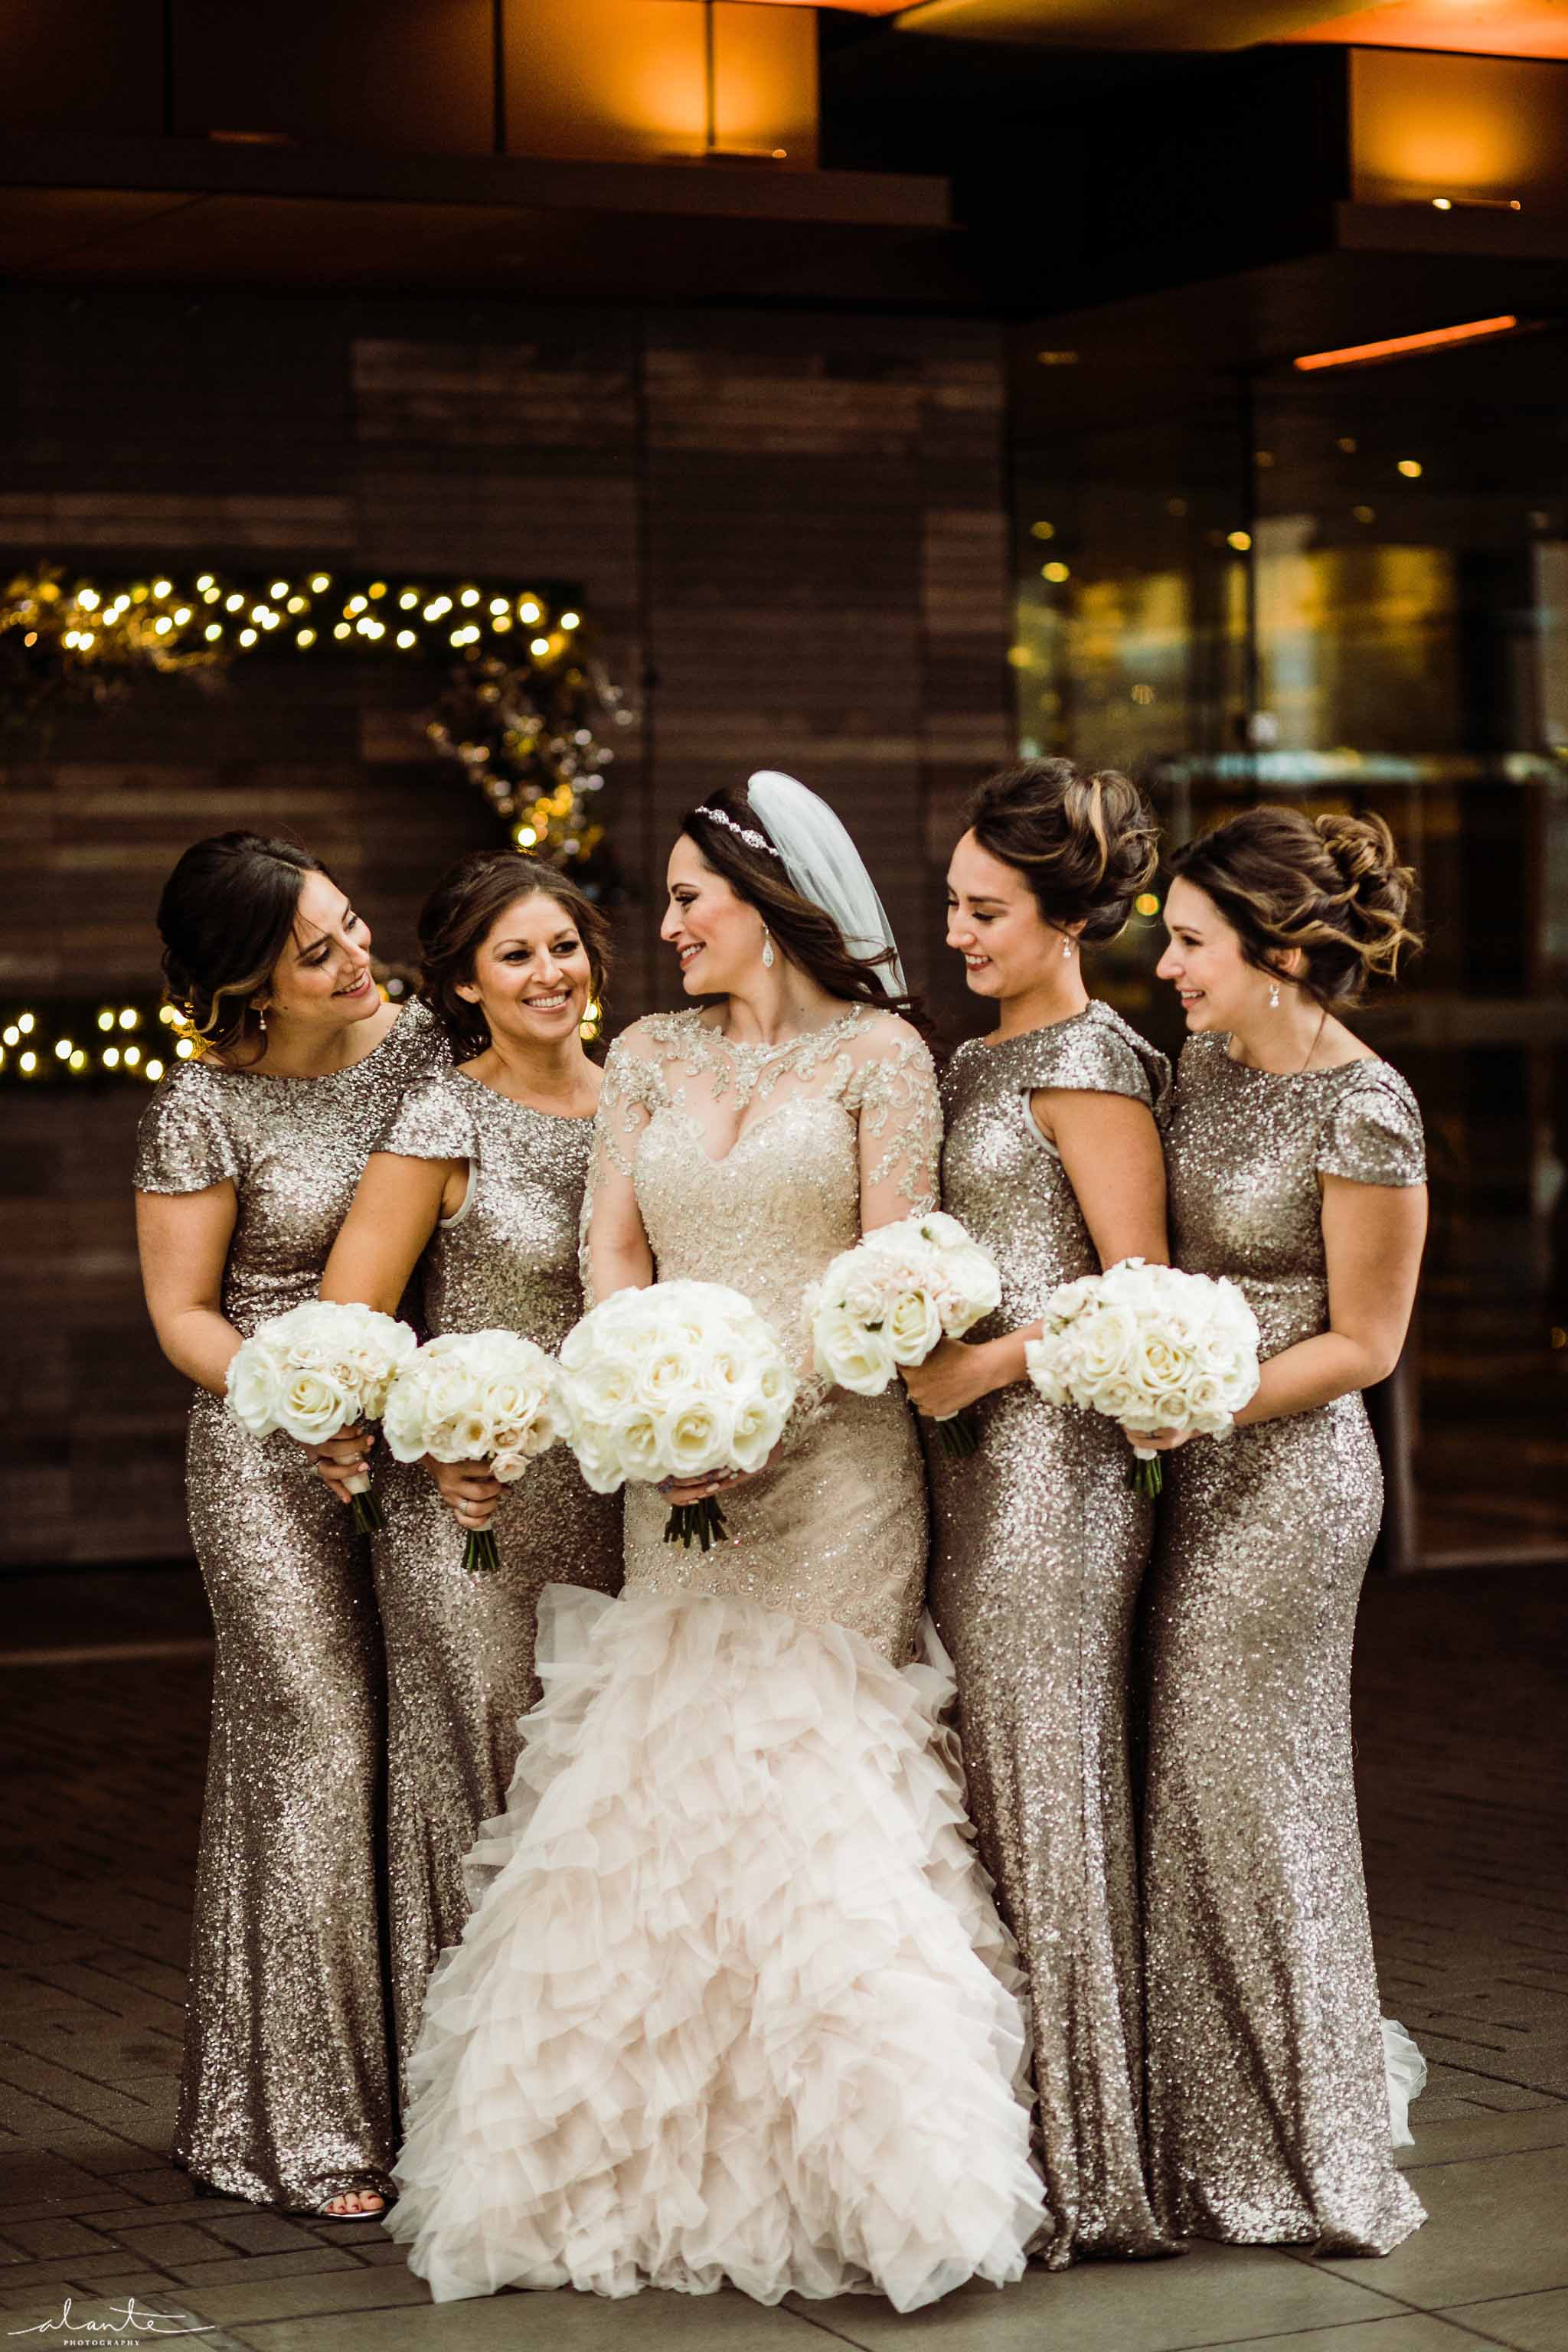 Bride and brides maids with bouquets of all white roses - Luxury Winter Wedding at the Four Seasons by Flora Nova Design Seattle